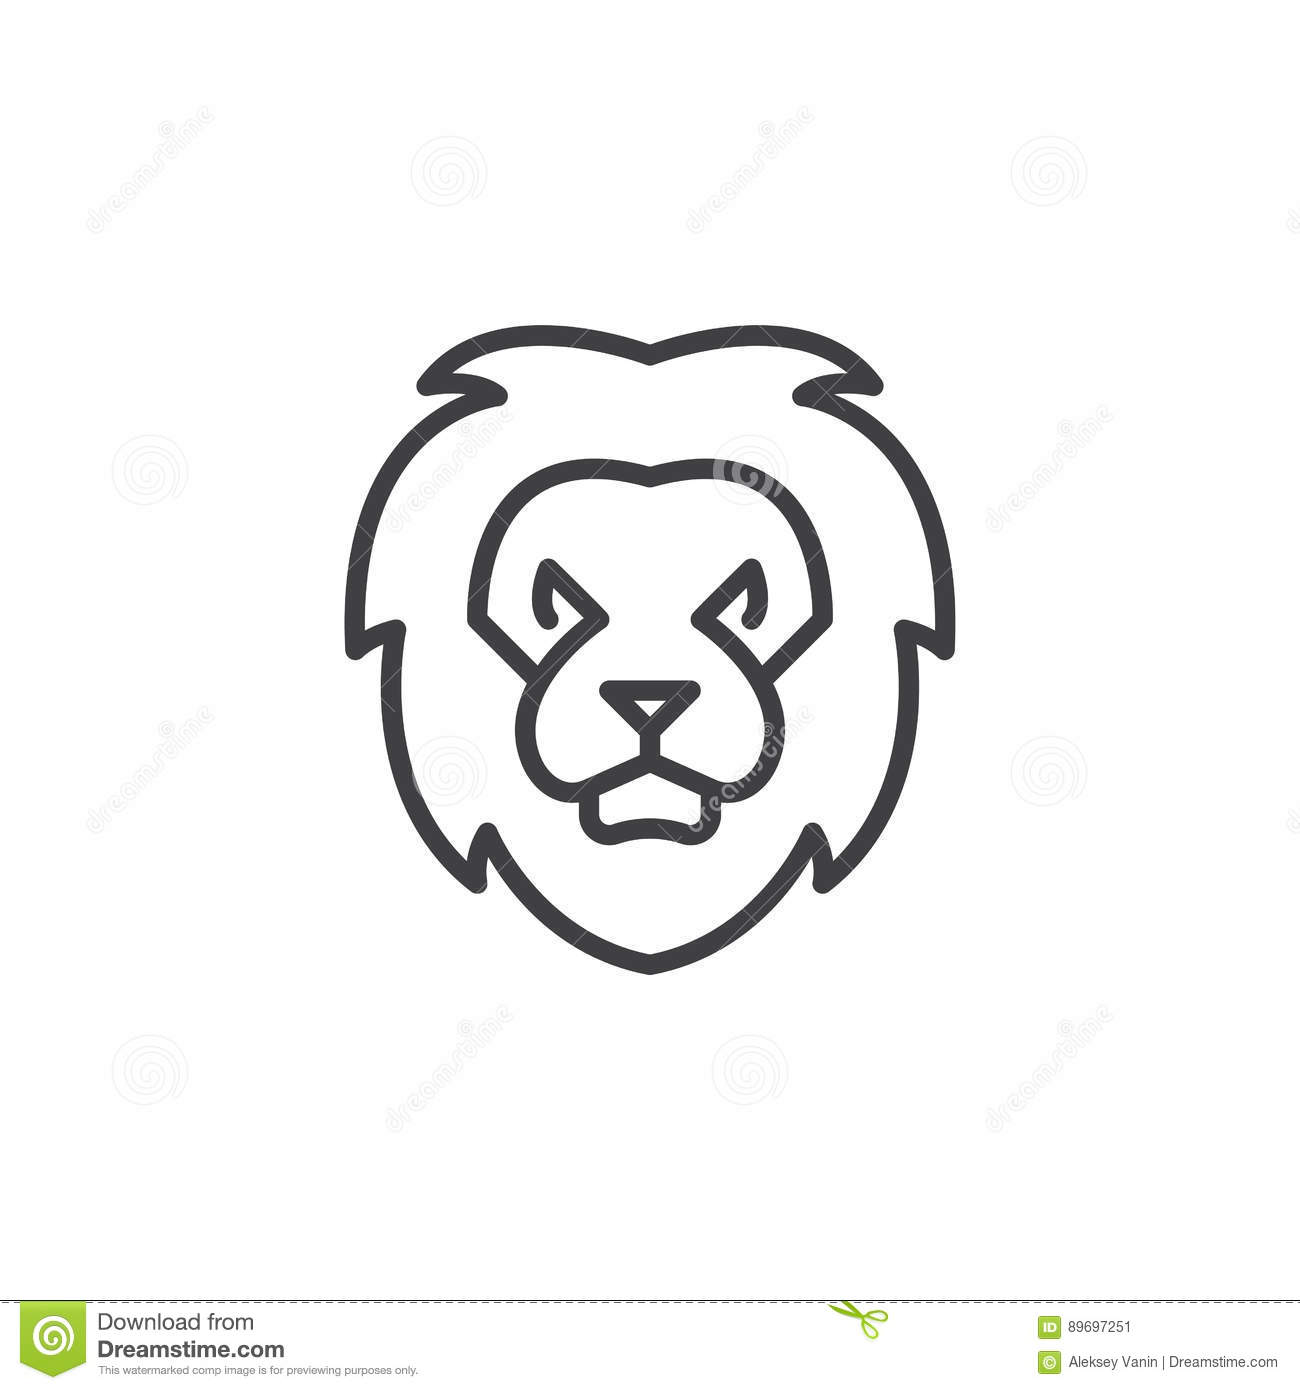 Lion Head Line Icon Outline Vector Sign Stock Vector Illustration Of Pictogram King 89697251 Ultimate free vector design images, eps, psd, ai, png, backgrounds. dreamstime com